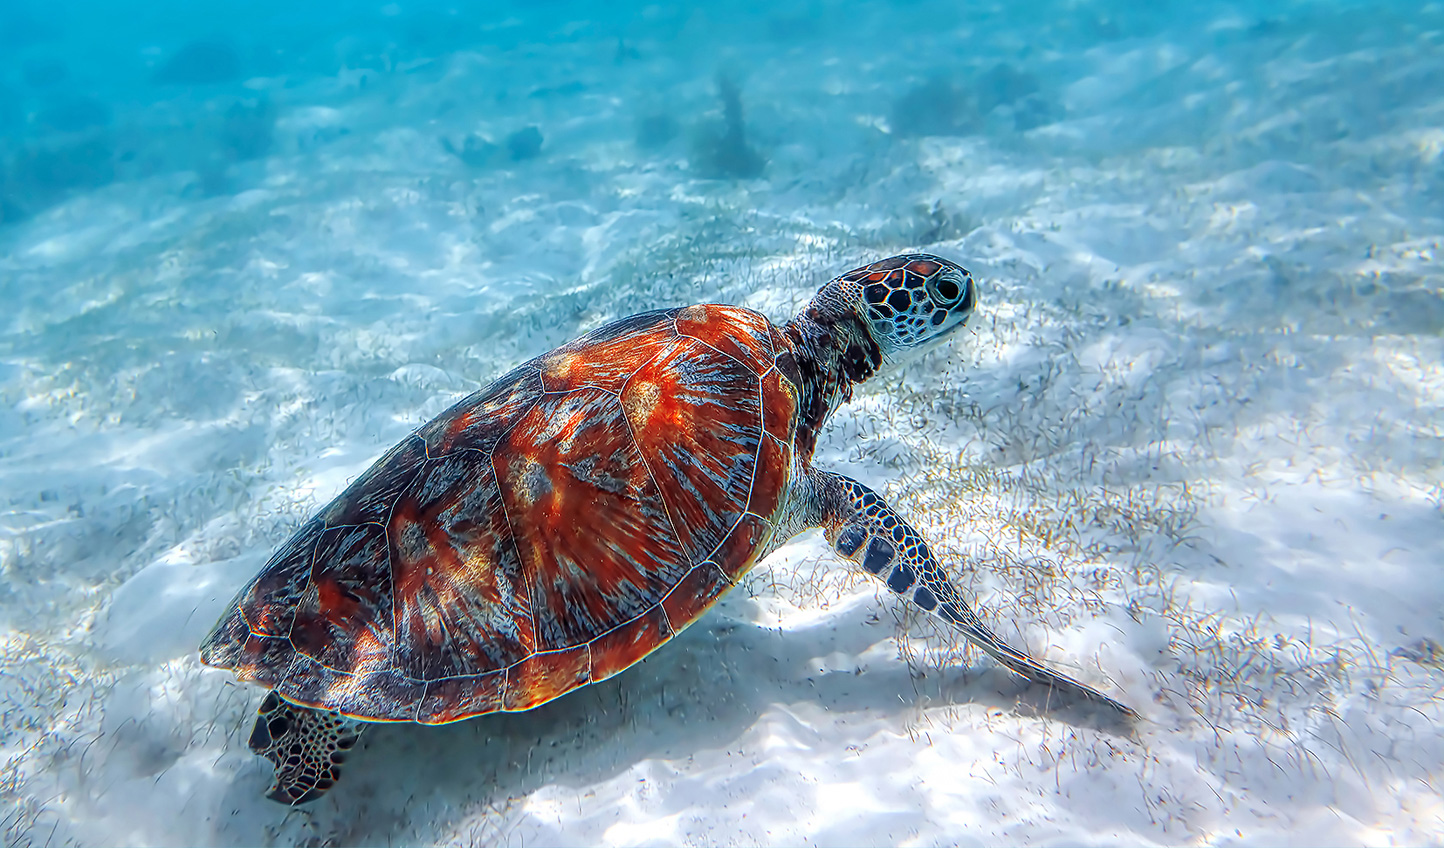 Dive down and discover a whole new side of wildlife in Zanzibar